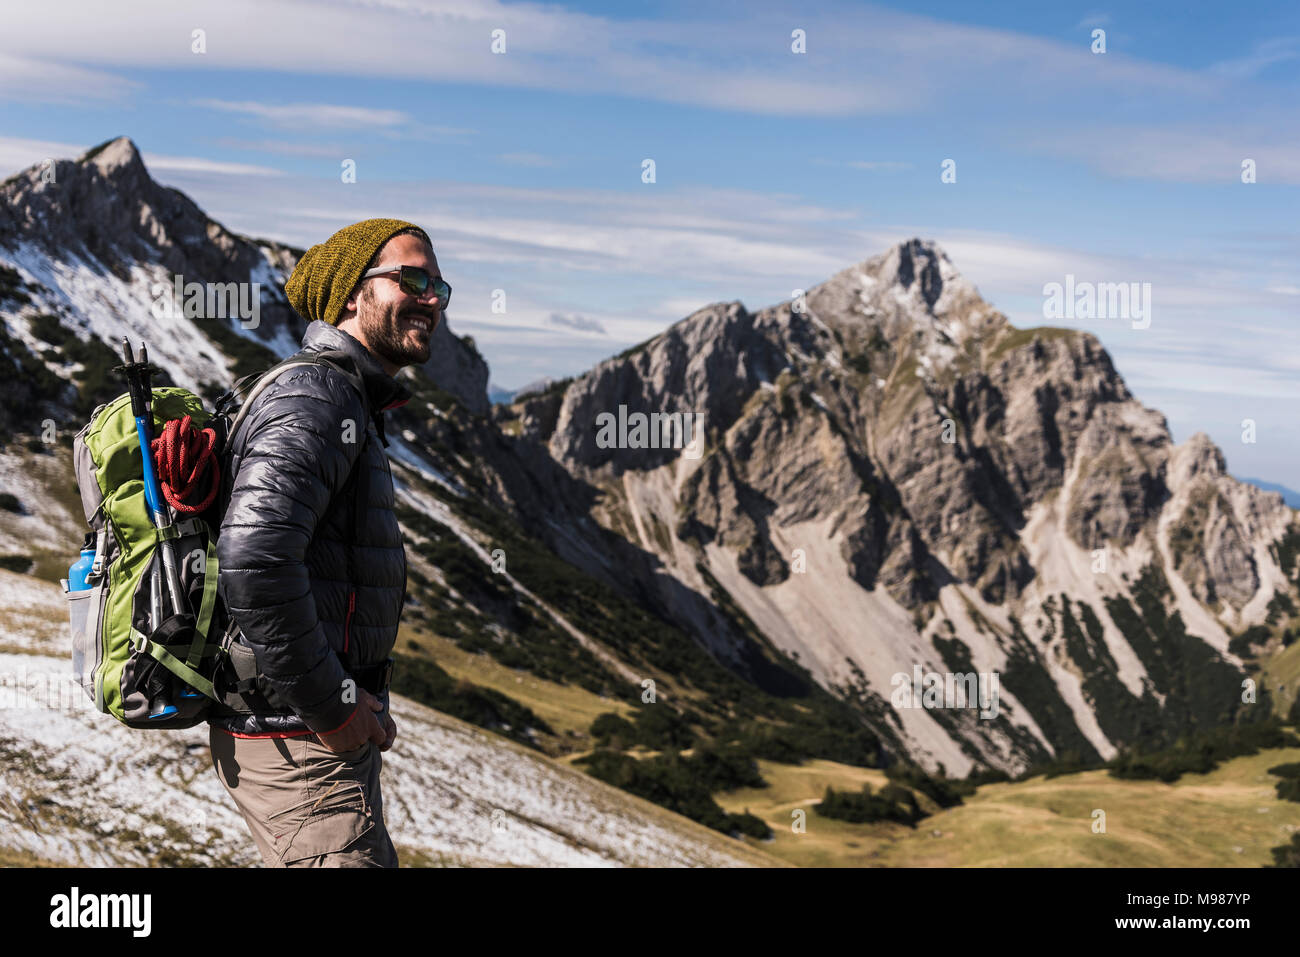 Austria, Tyrol, smiling young man on a hiking trip in the mountains - Stock Image